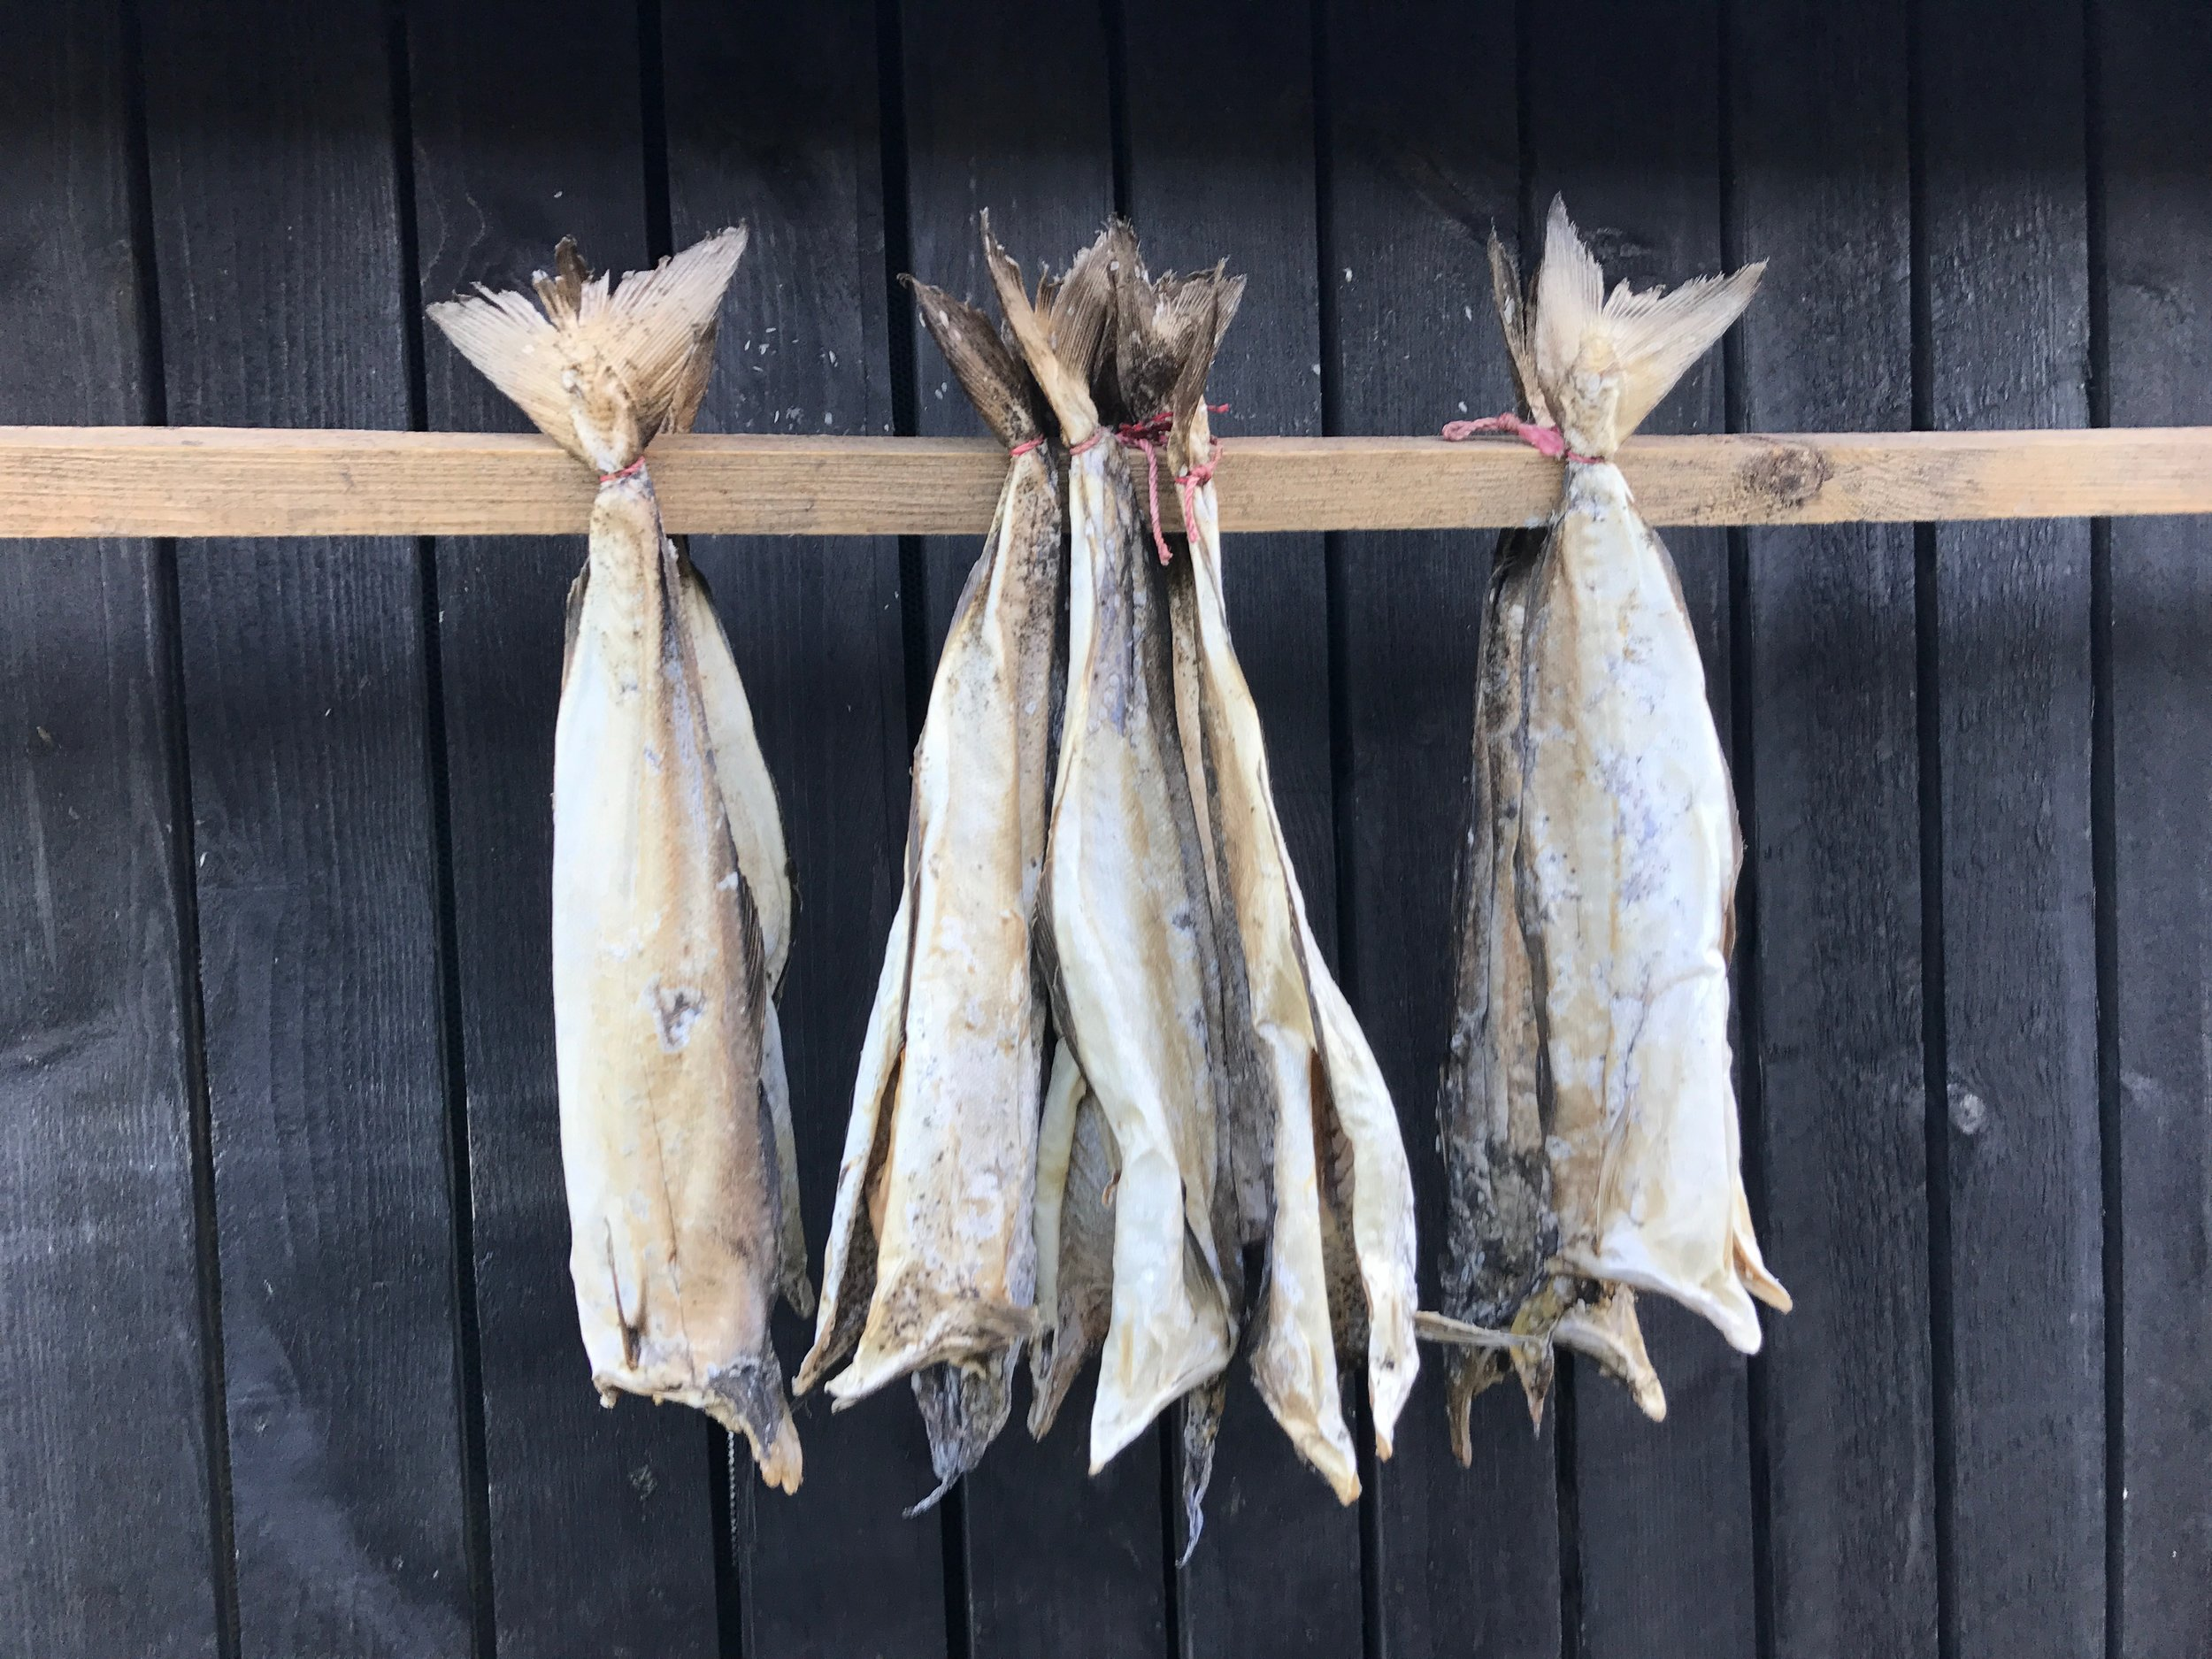 Wind-cured fish is another popular Faroese dish. Faroe Islands - October 2017